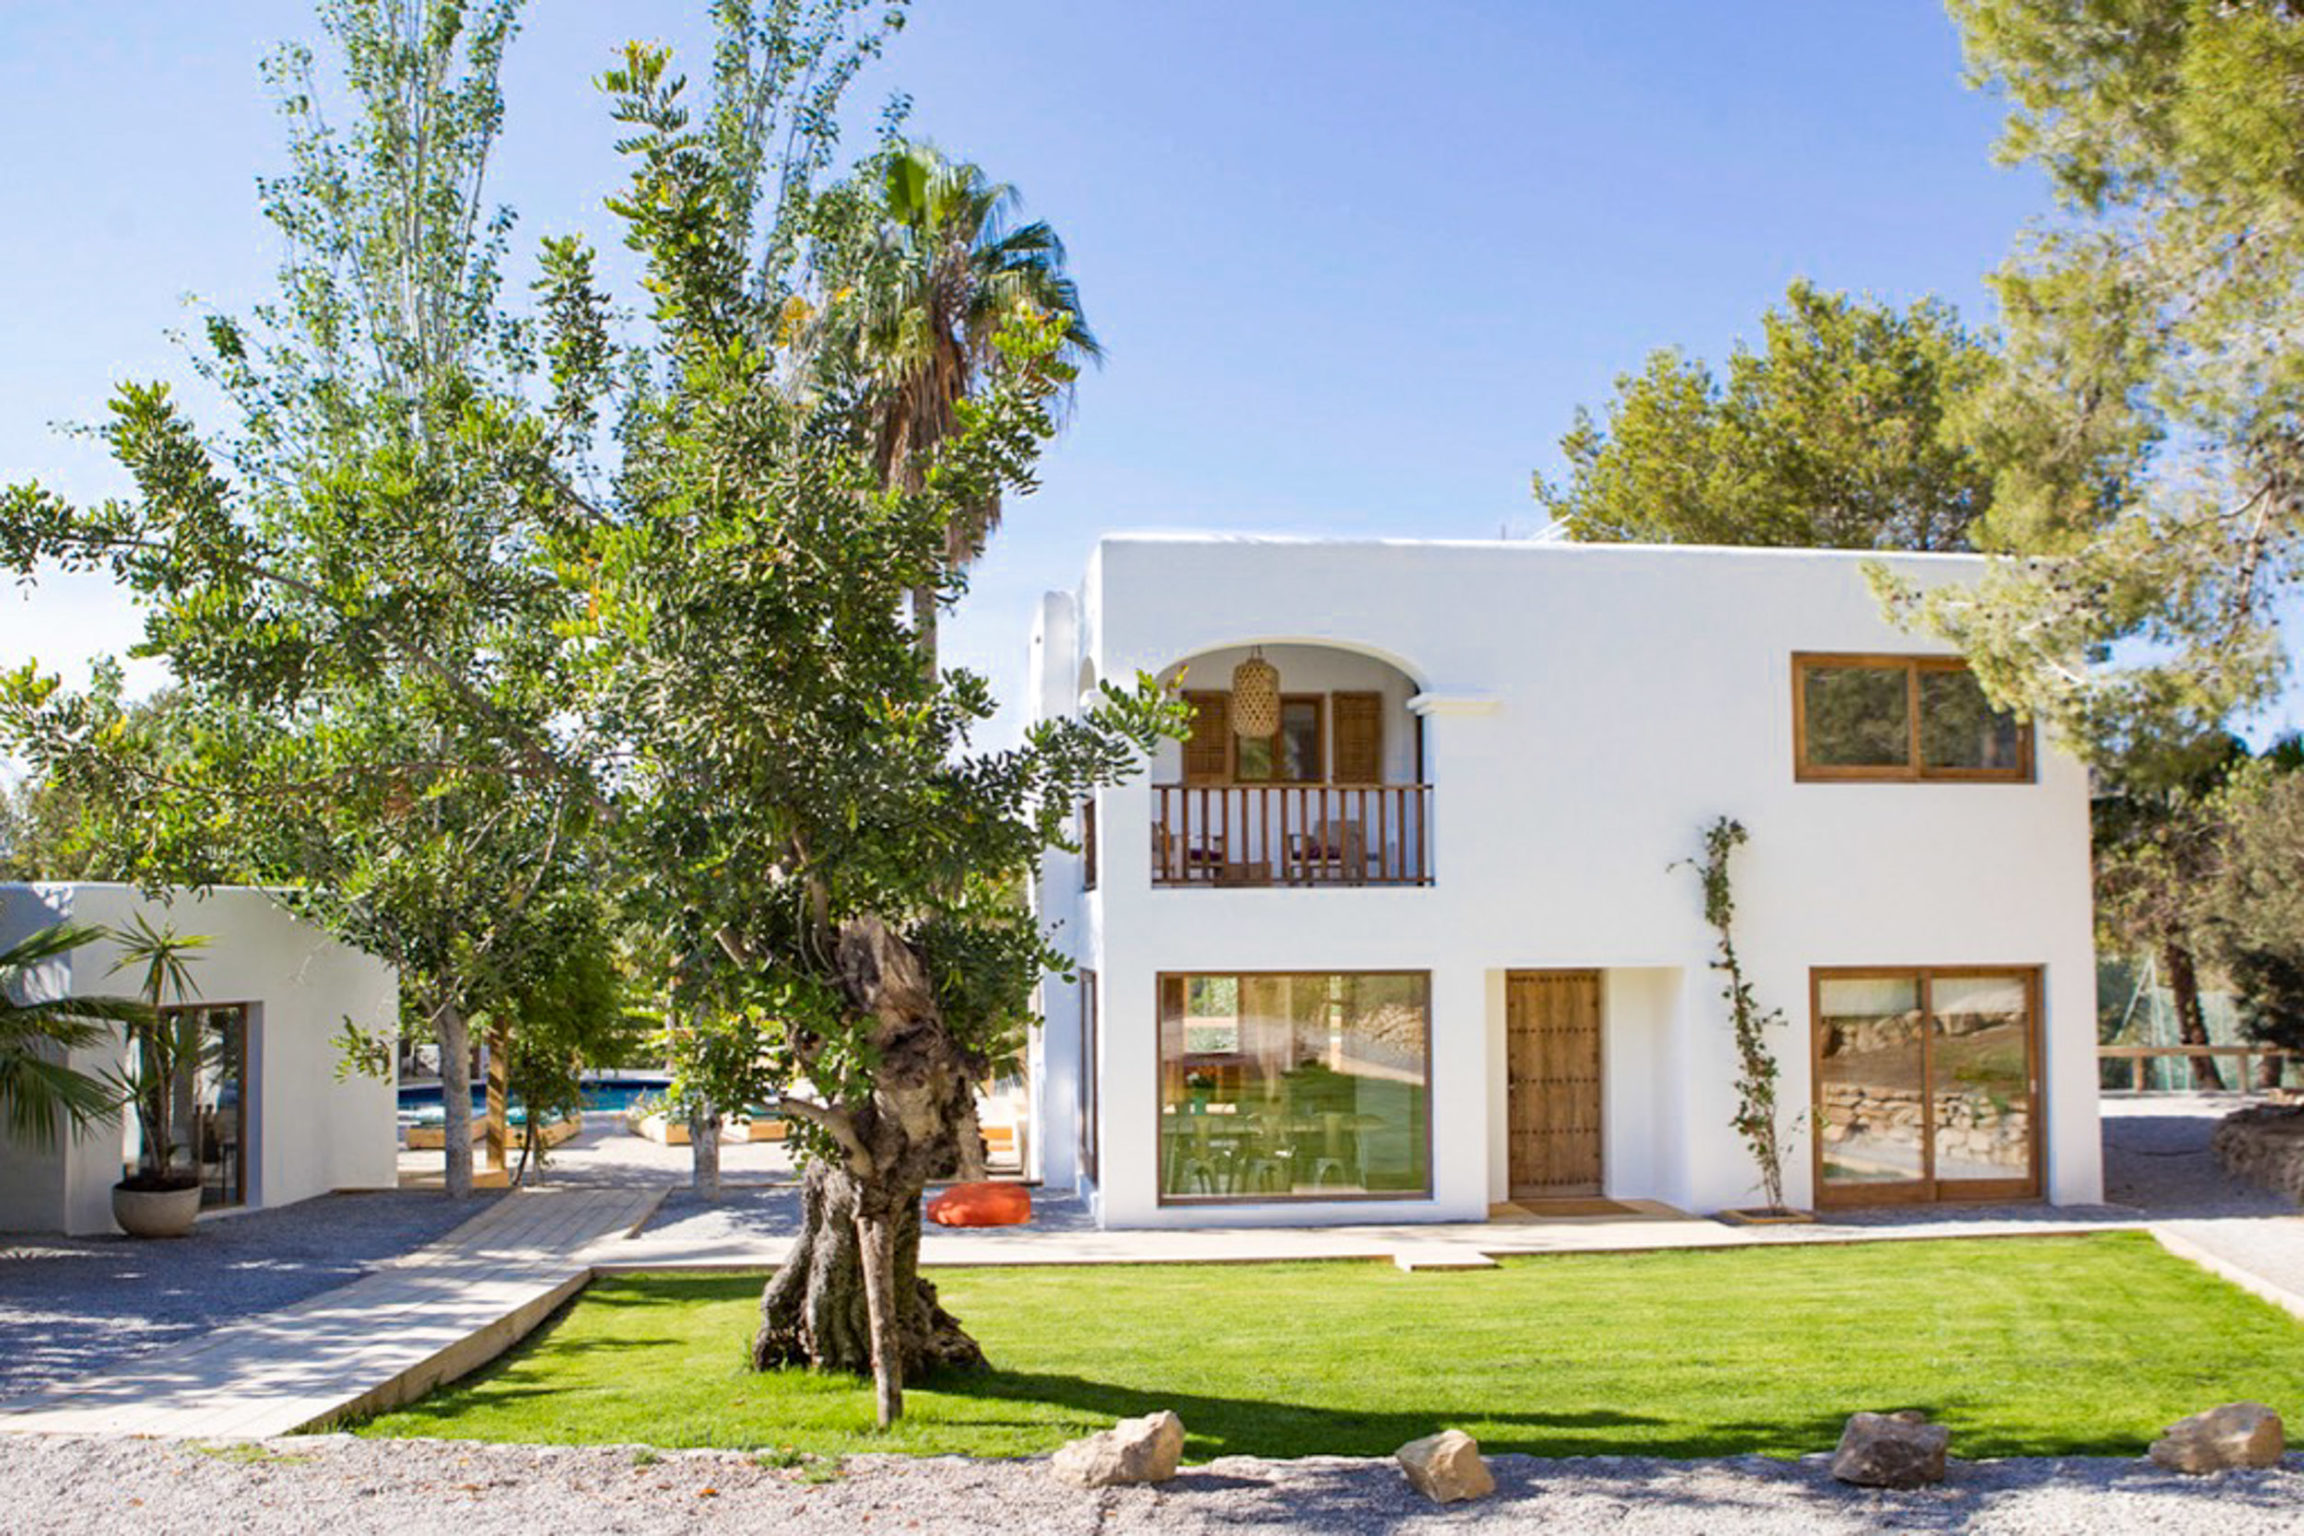 https://www.white-ibiza.com/wp-content/uploads/2020/03/white-ibiza-property-WI118-2020-08-2304x1536.jpg